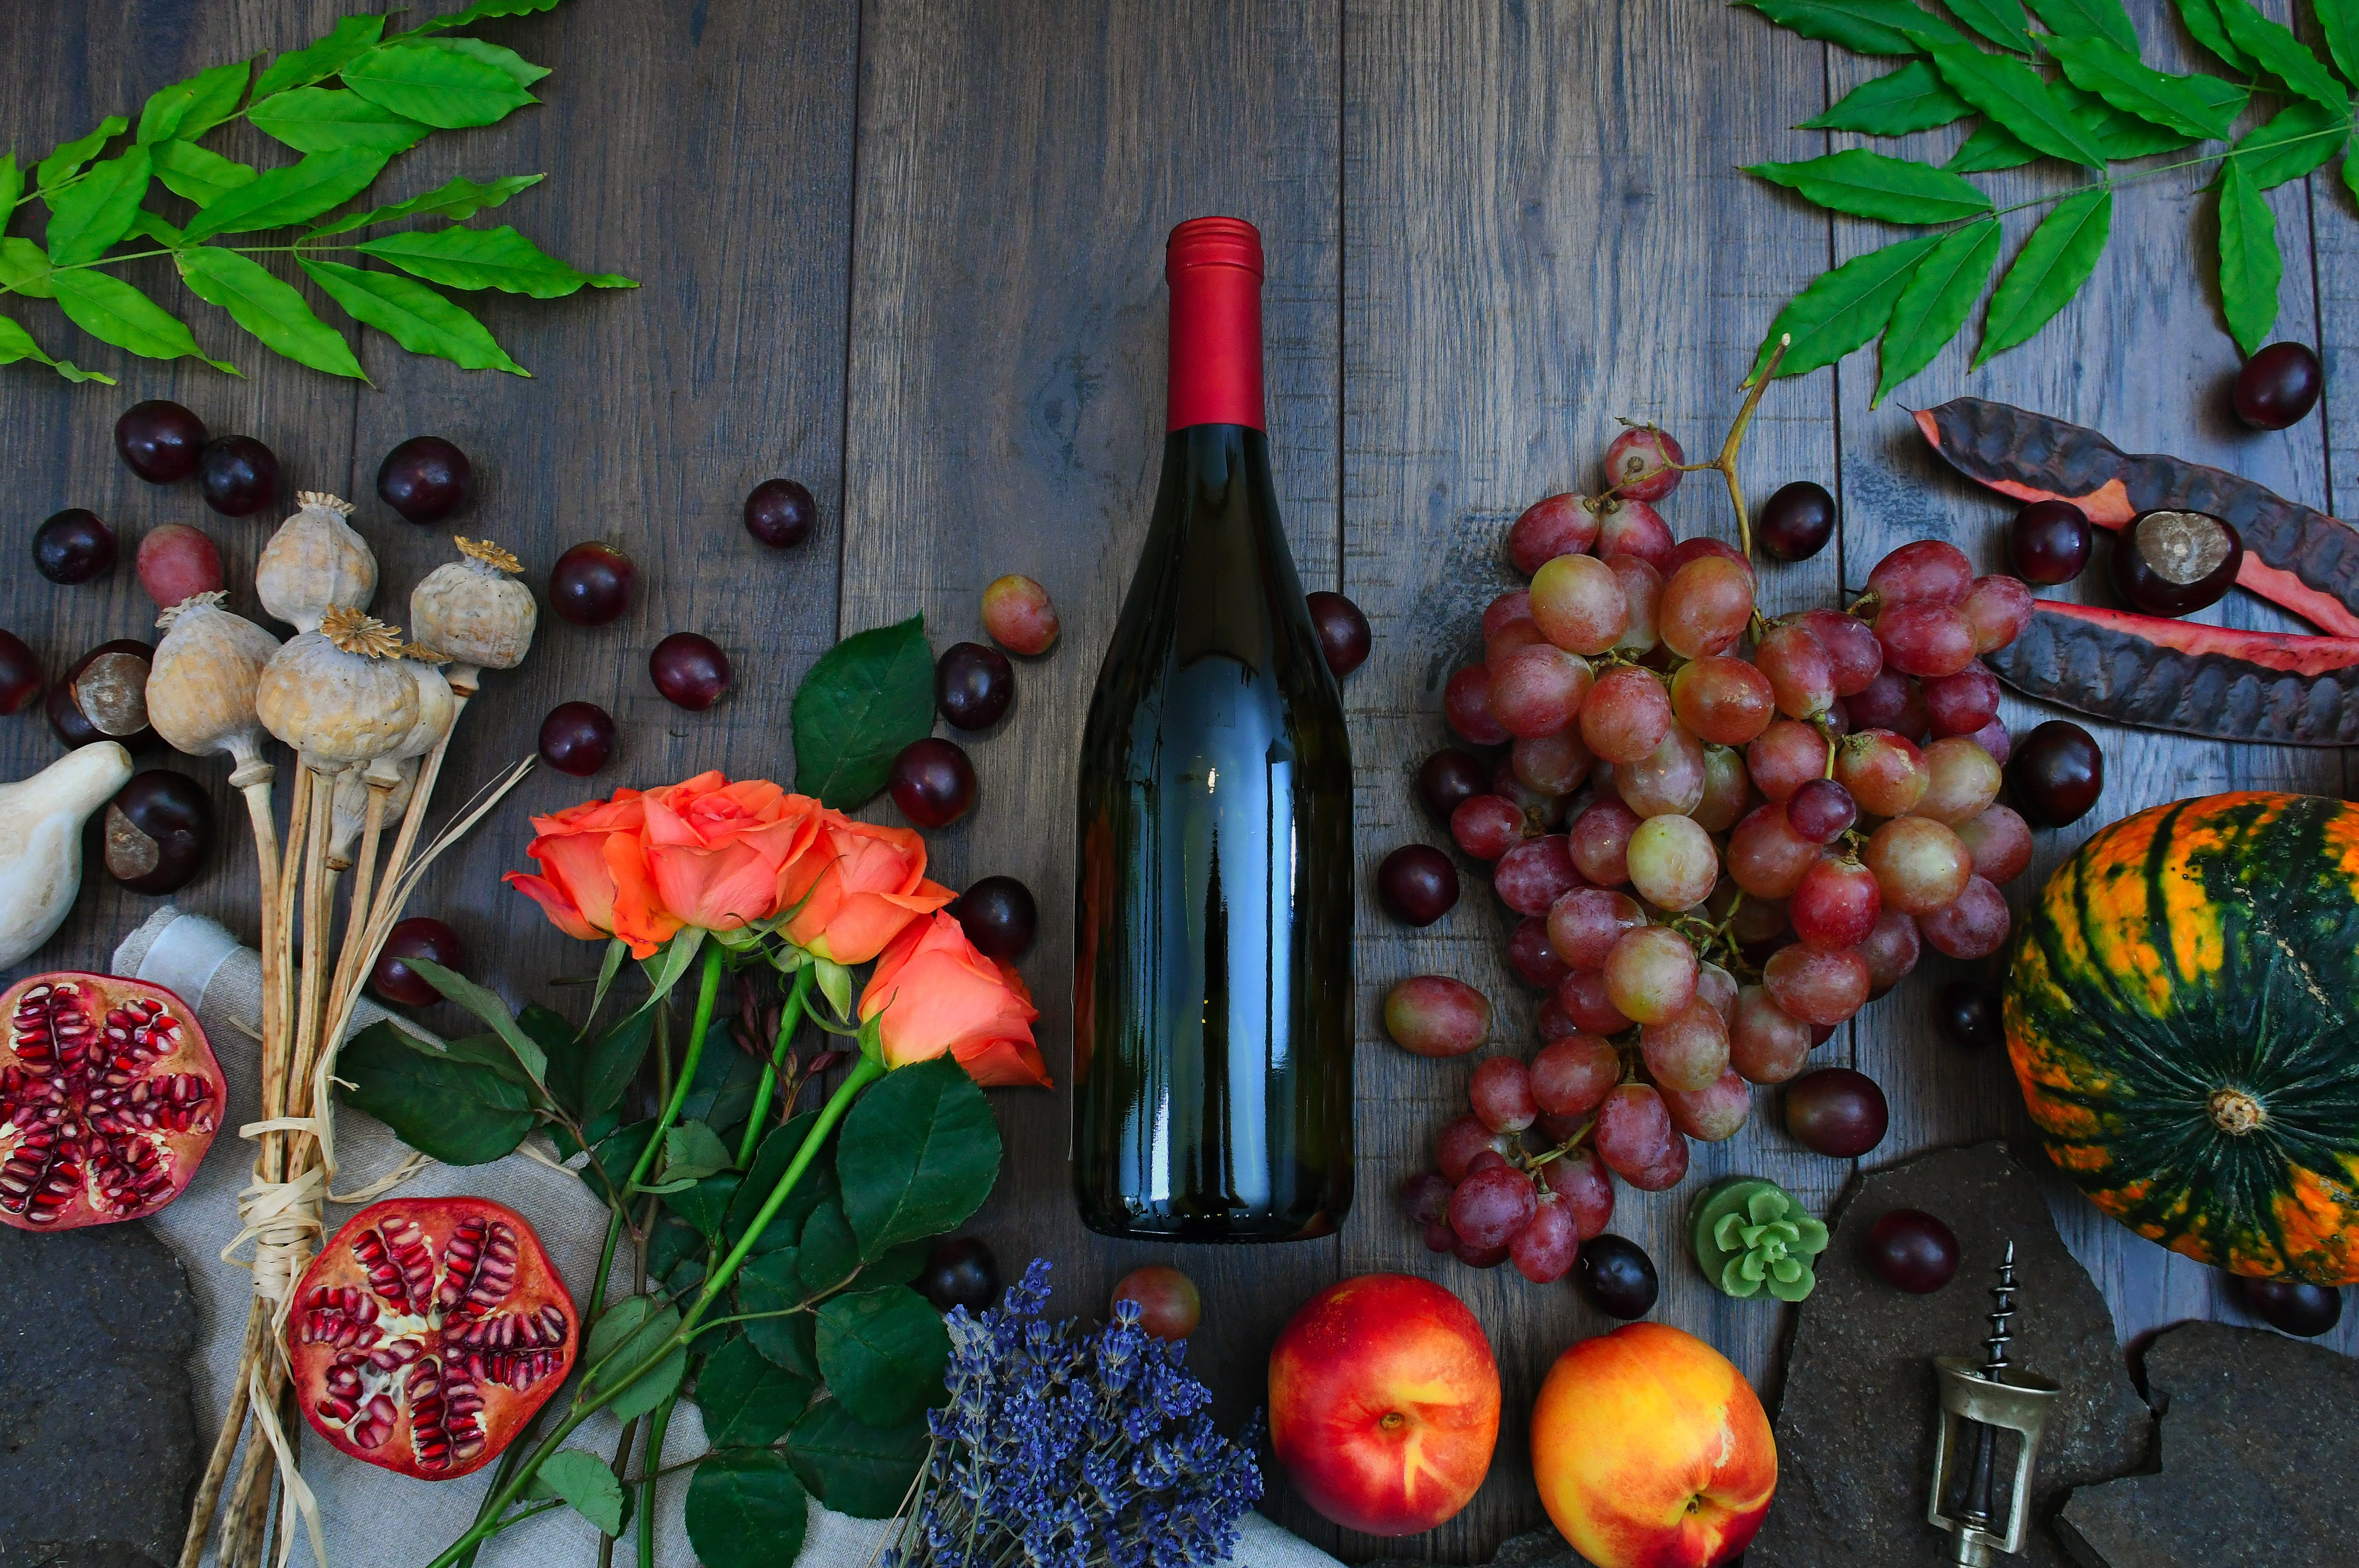 Wine Bottle Beside Grapes, Roses and Several Fruits on Brown Wooden Surface